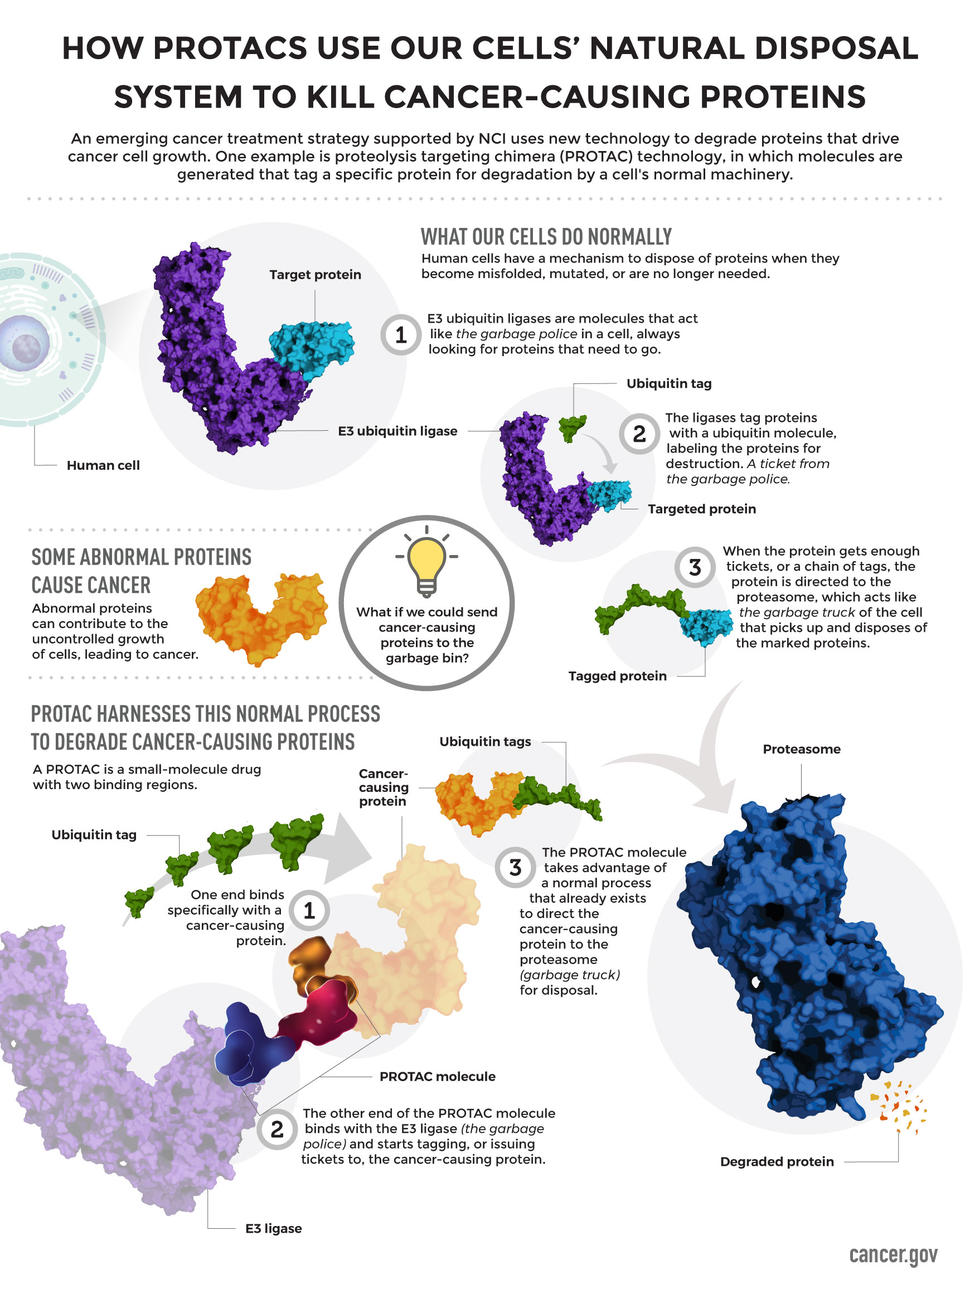 How PROTACS Use Our Cells' Natural Disposal System to Kill Cancer-Causing Proteins Infographic